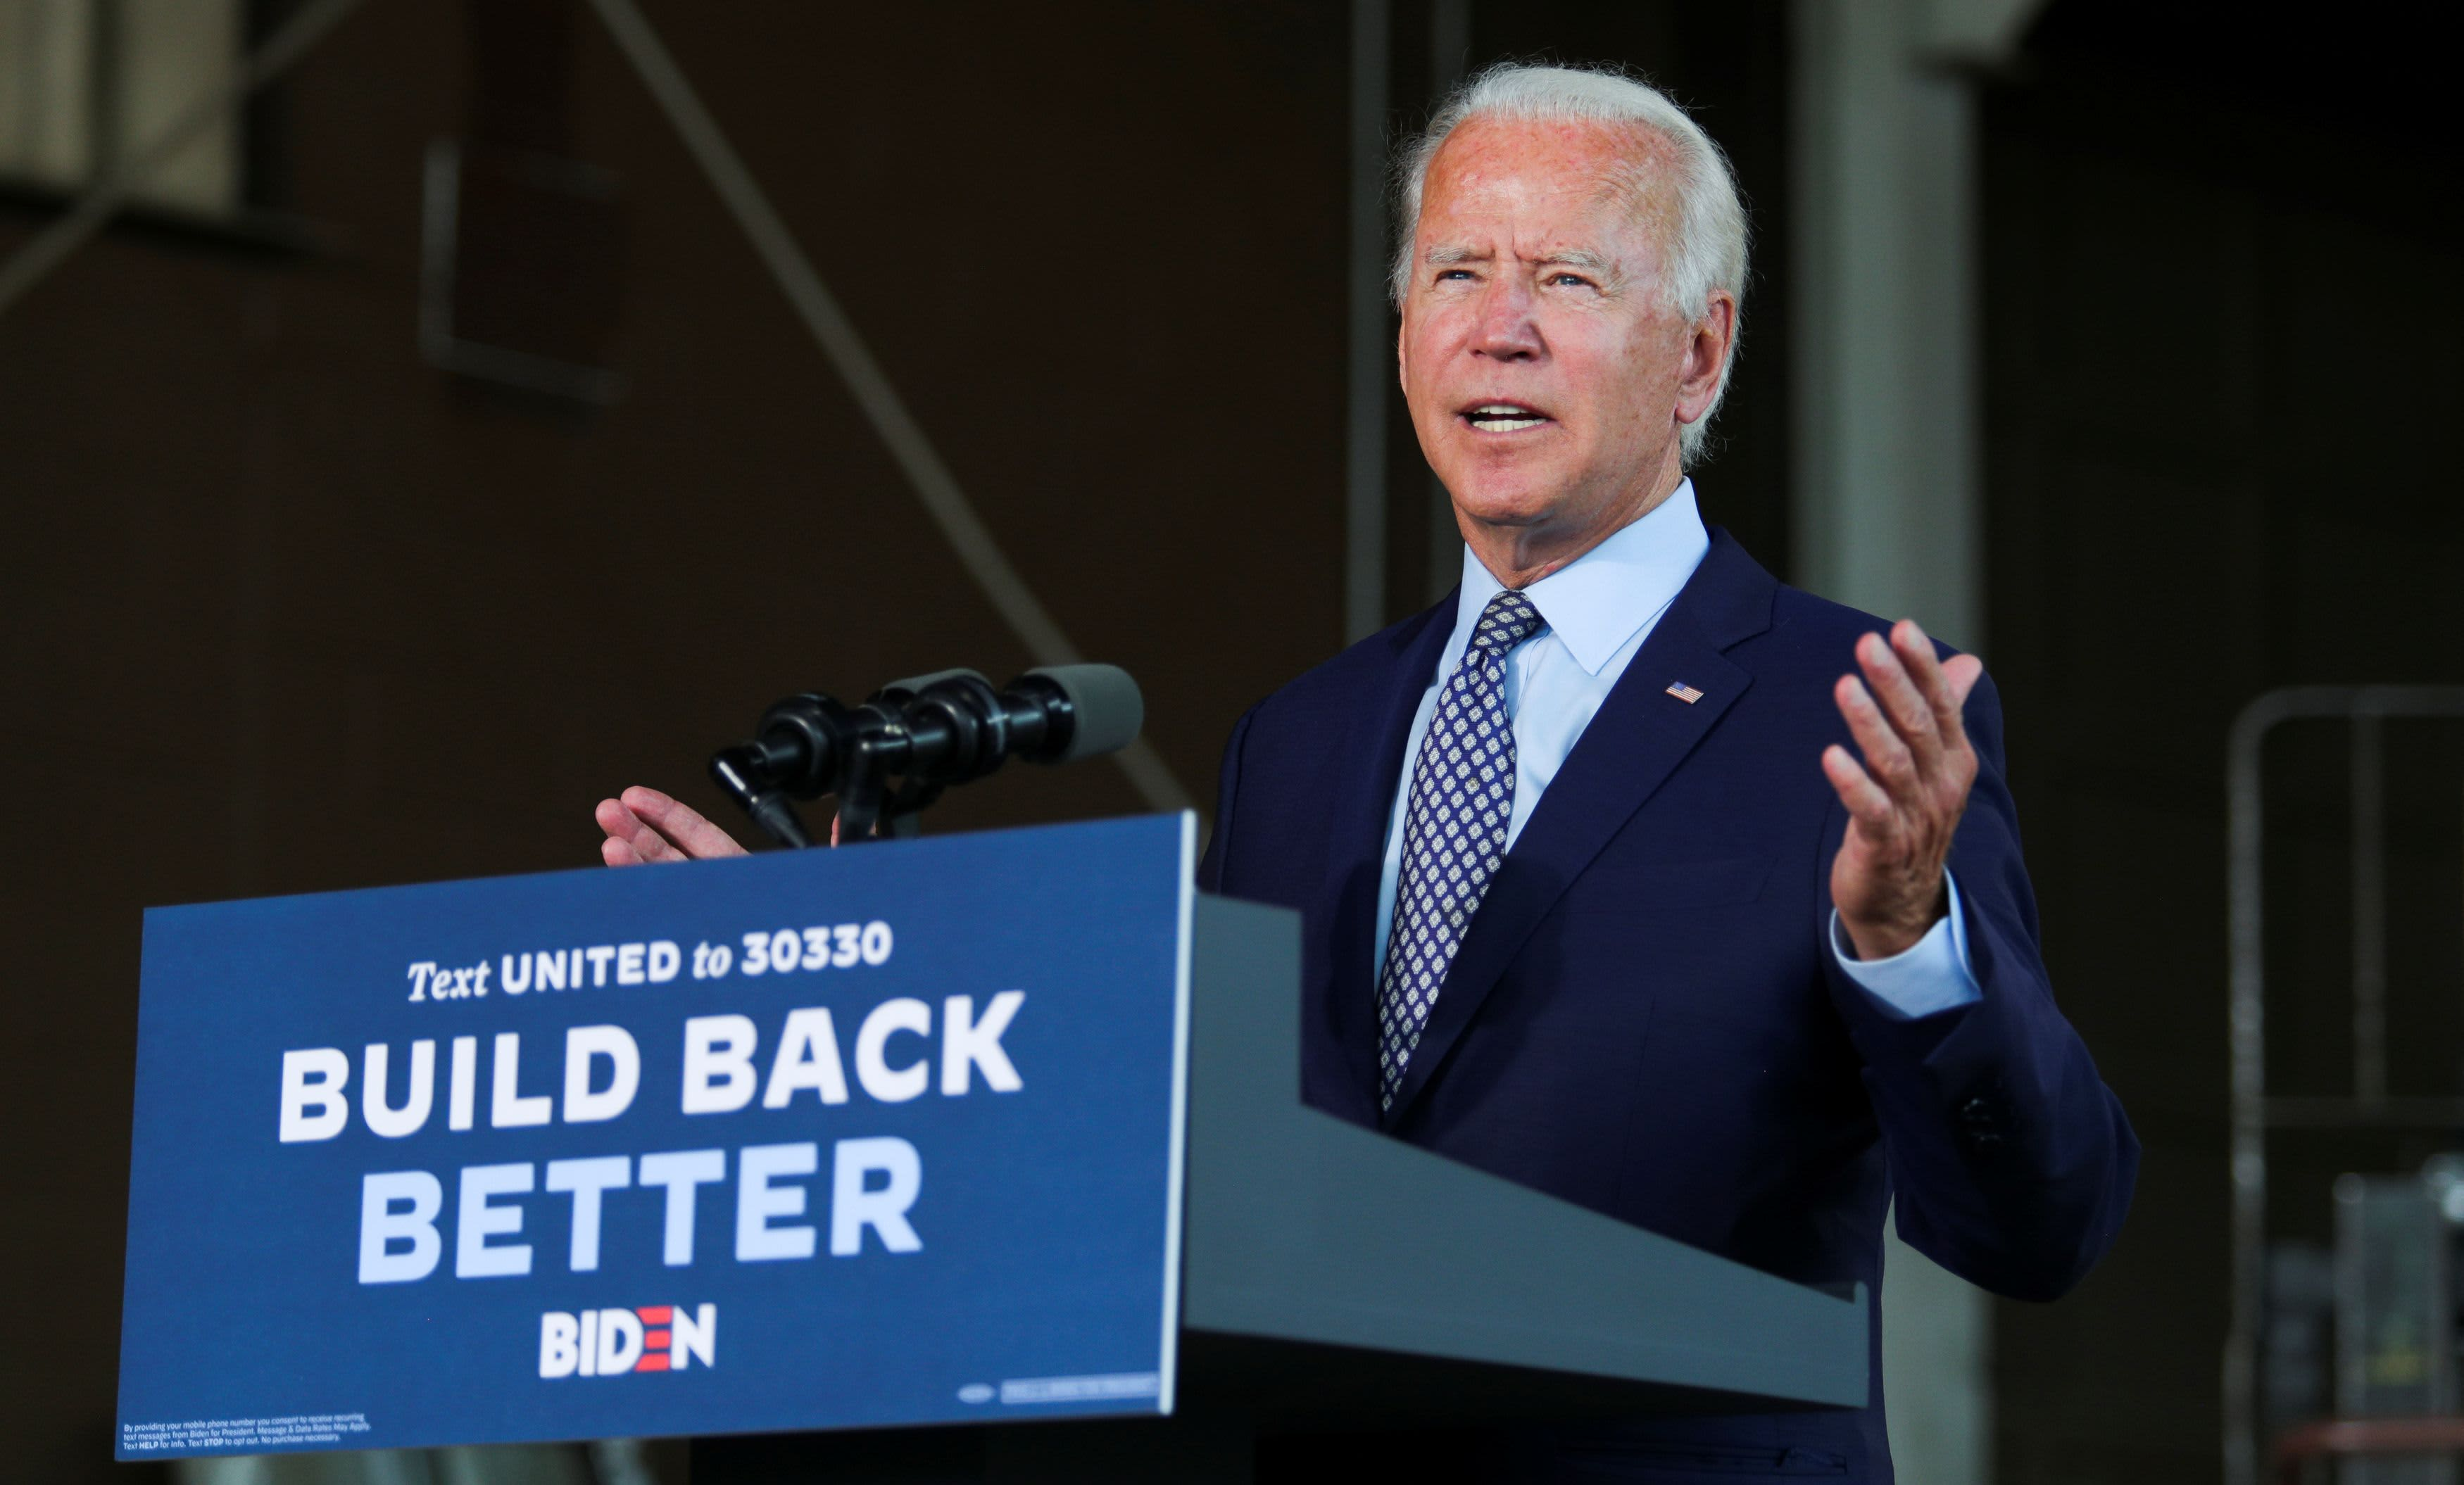 Biden says investors 'don't need me,' calls for end of 'era of shareholder capitalism' - CNBC